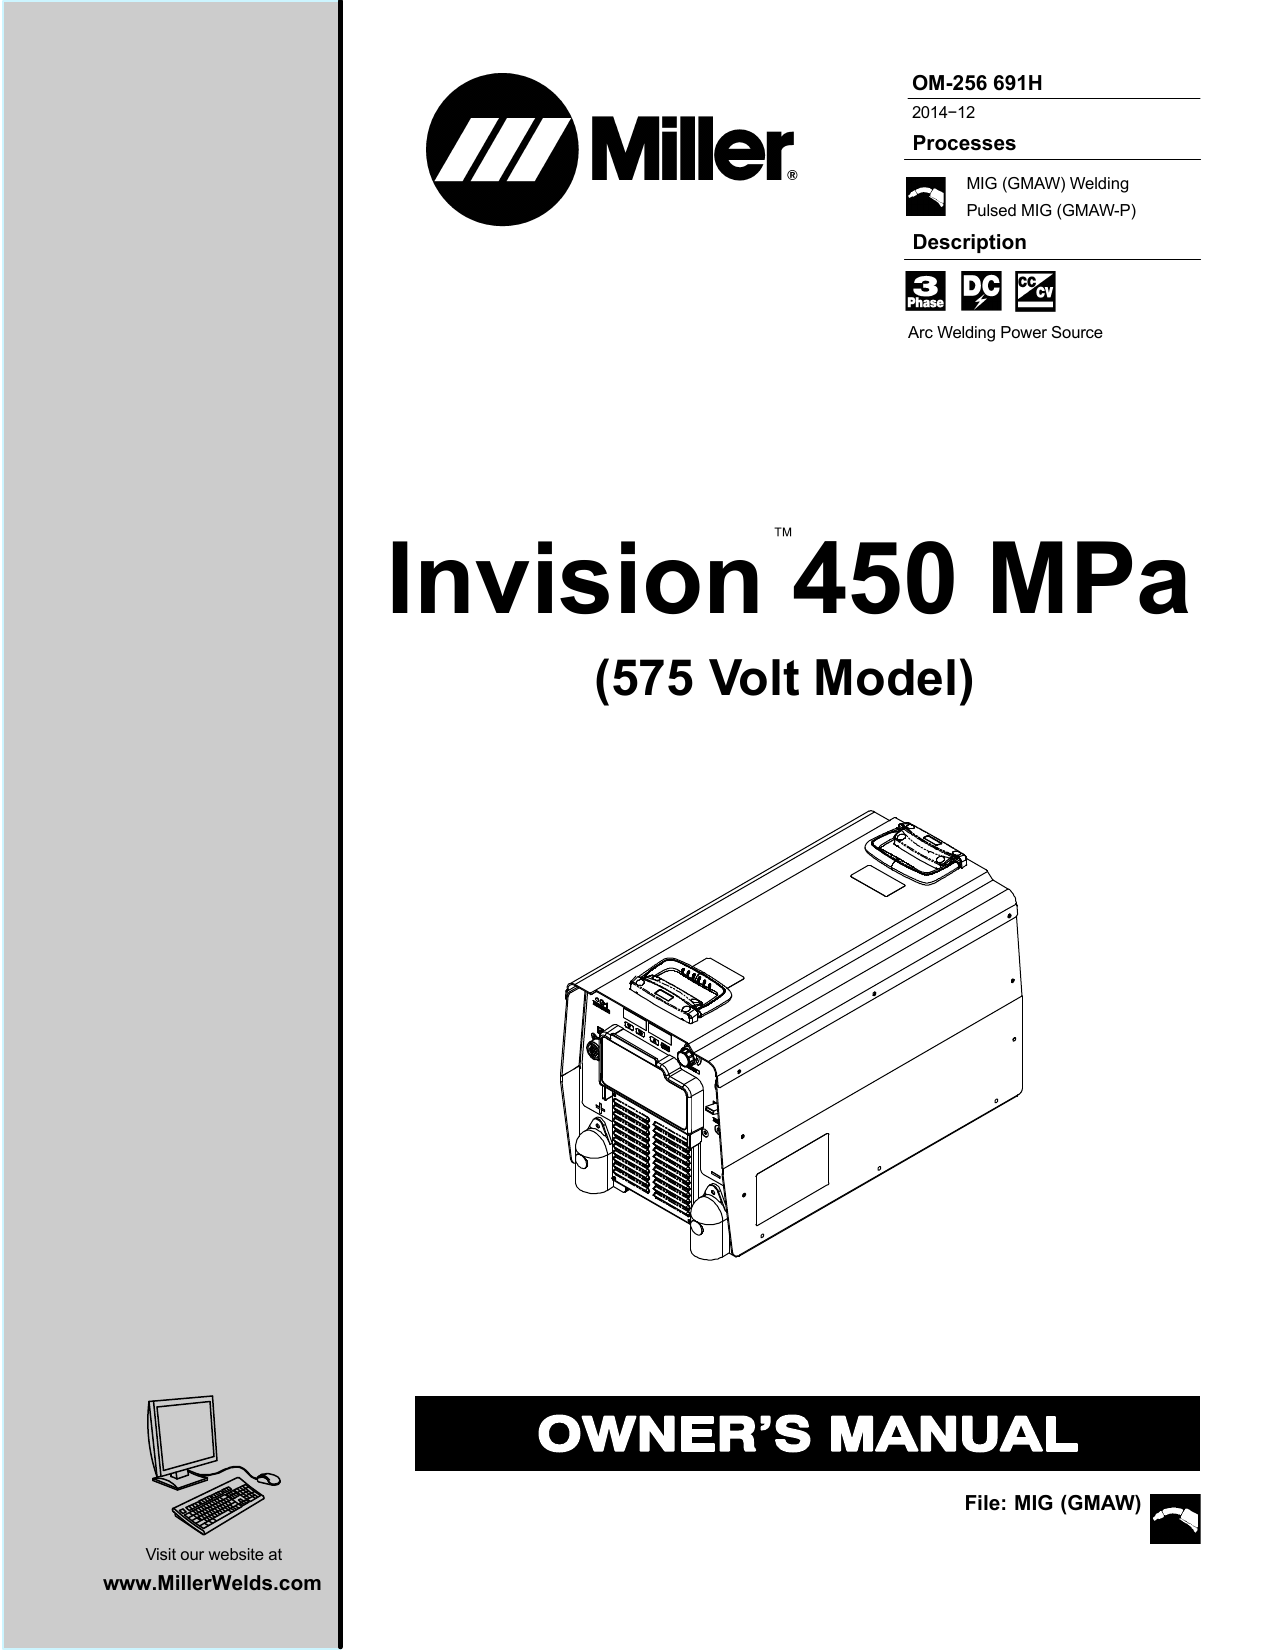 Miller INVISION 450 MPA (575 VOLT MODEL) User manual